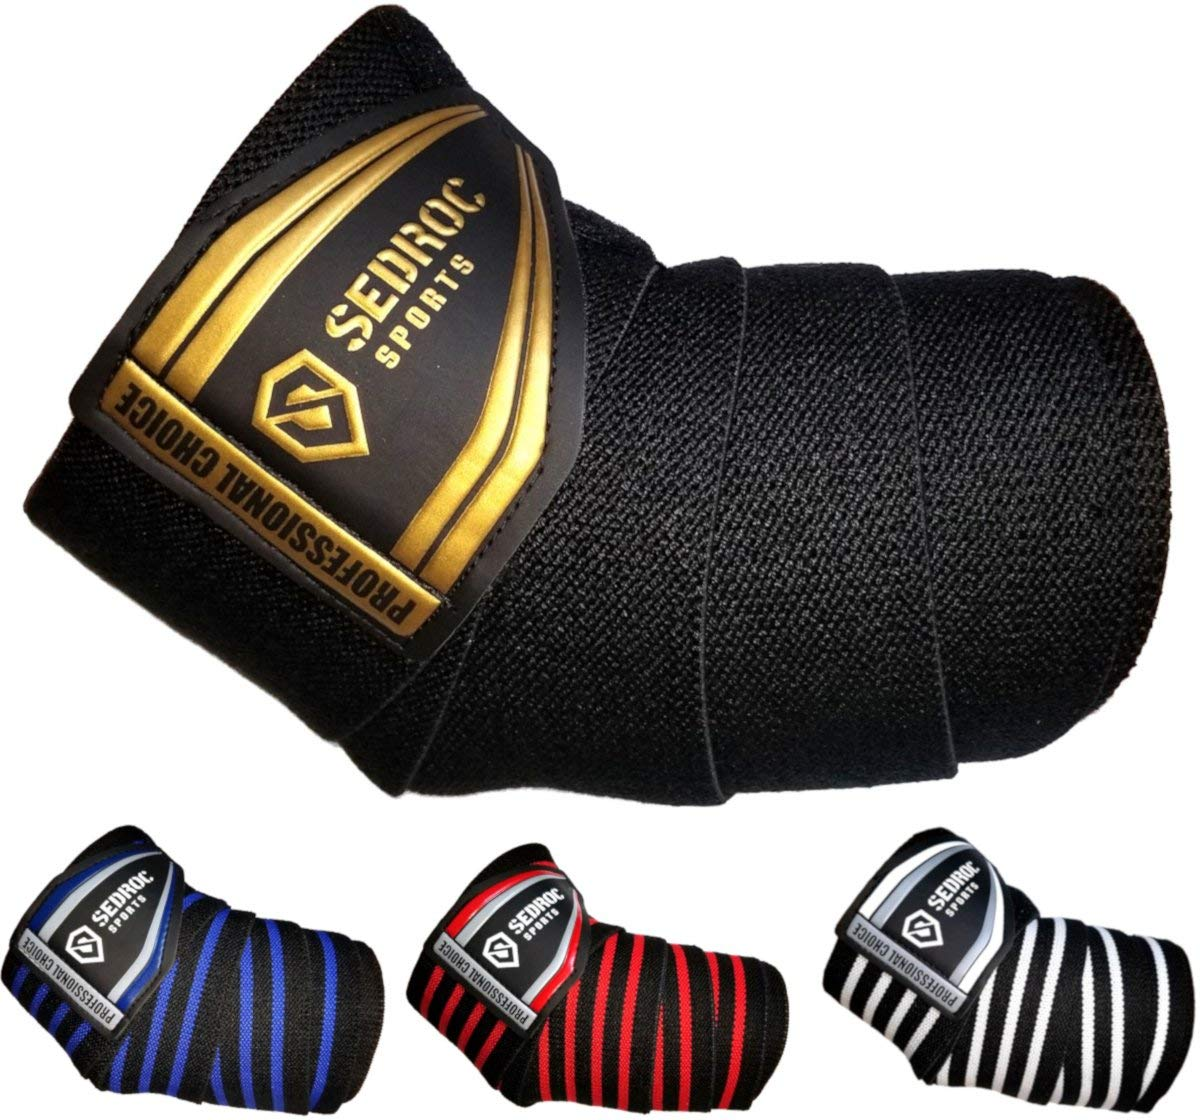 2028081889 Get Quotations · Sedroc Sports Professional Weight Lifting Elbow Wraps  Powerlifting Support Sleeves - Pair